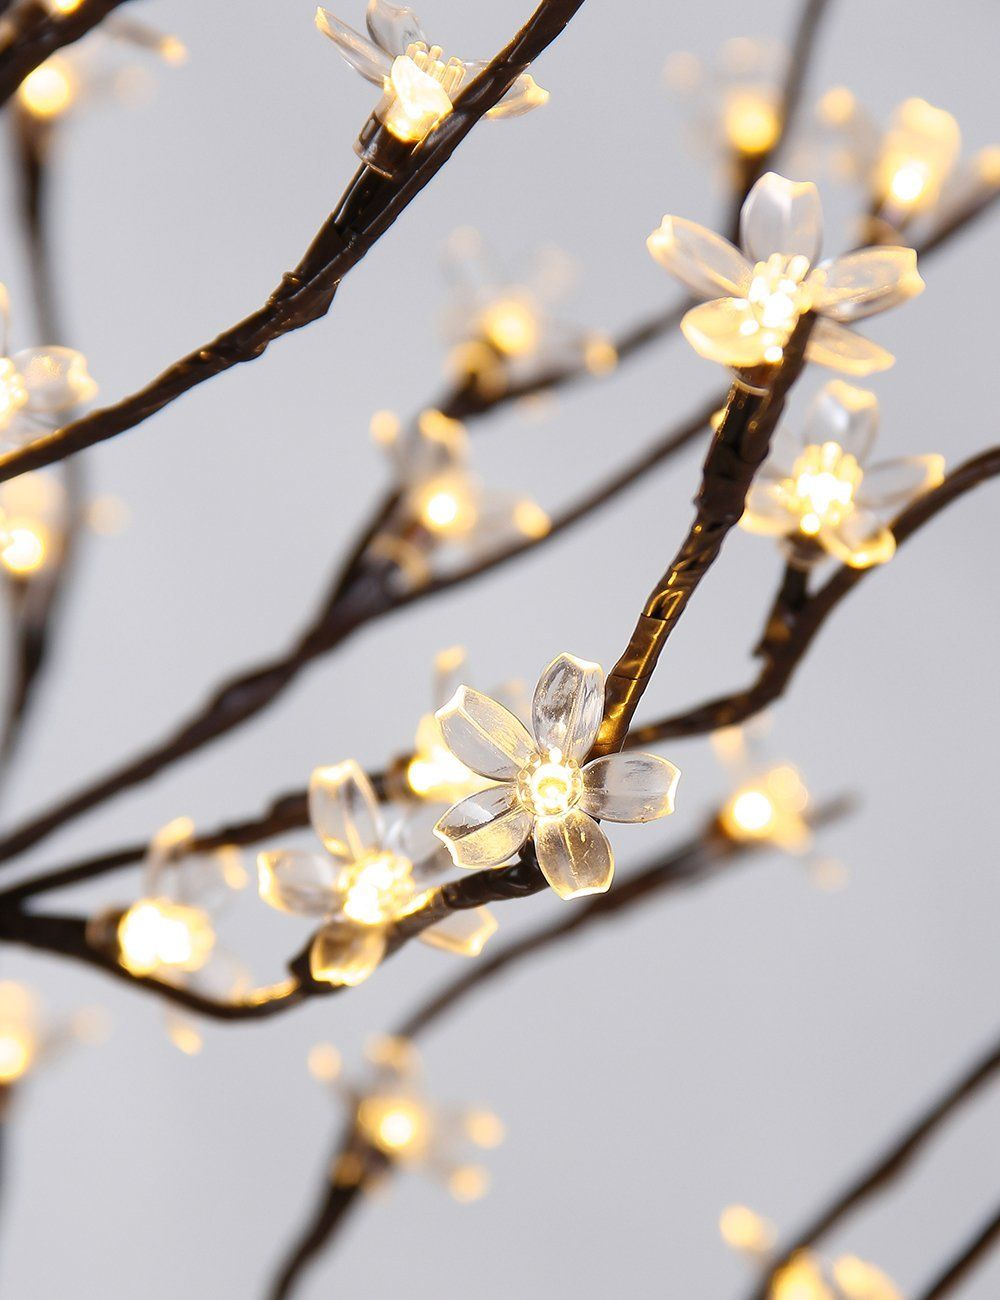 Flower led lights for home and holiday decoration